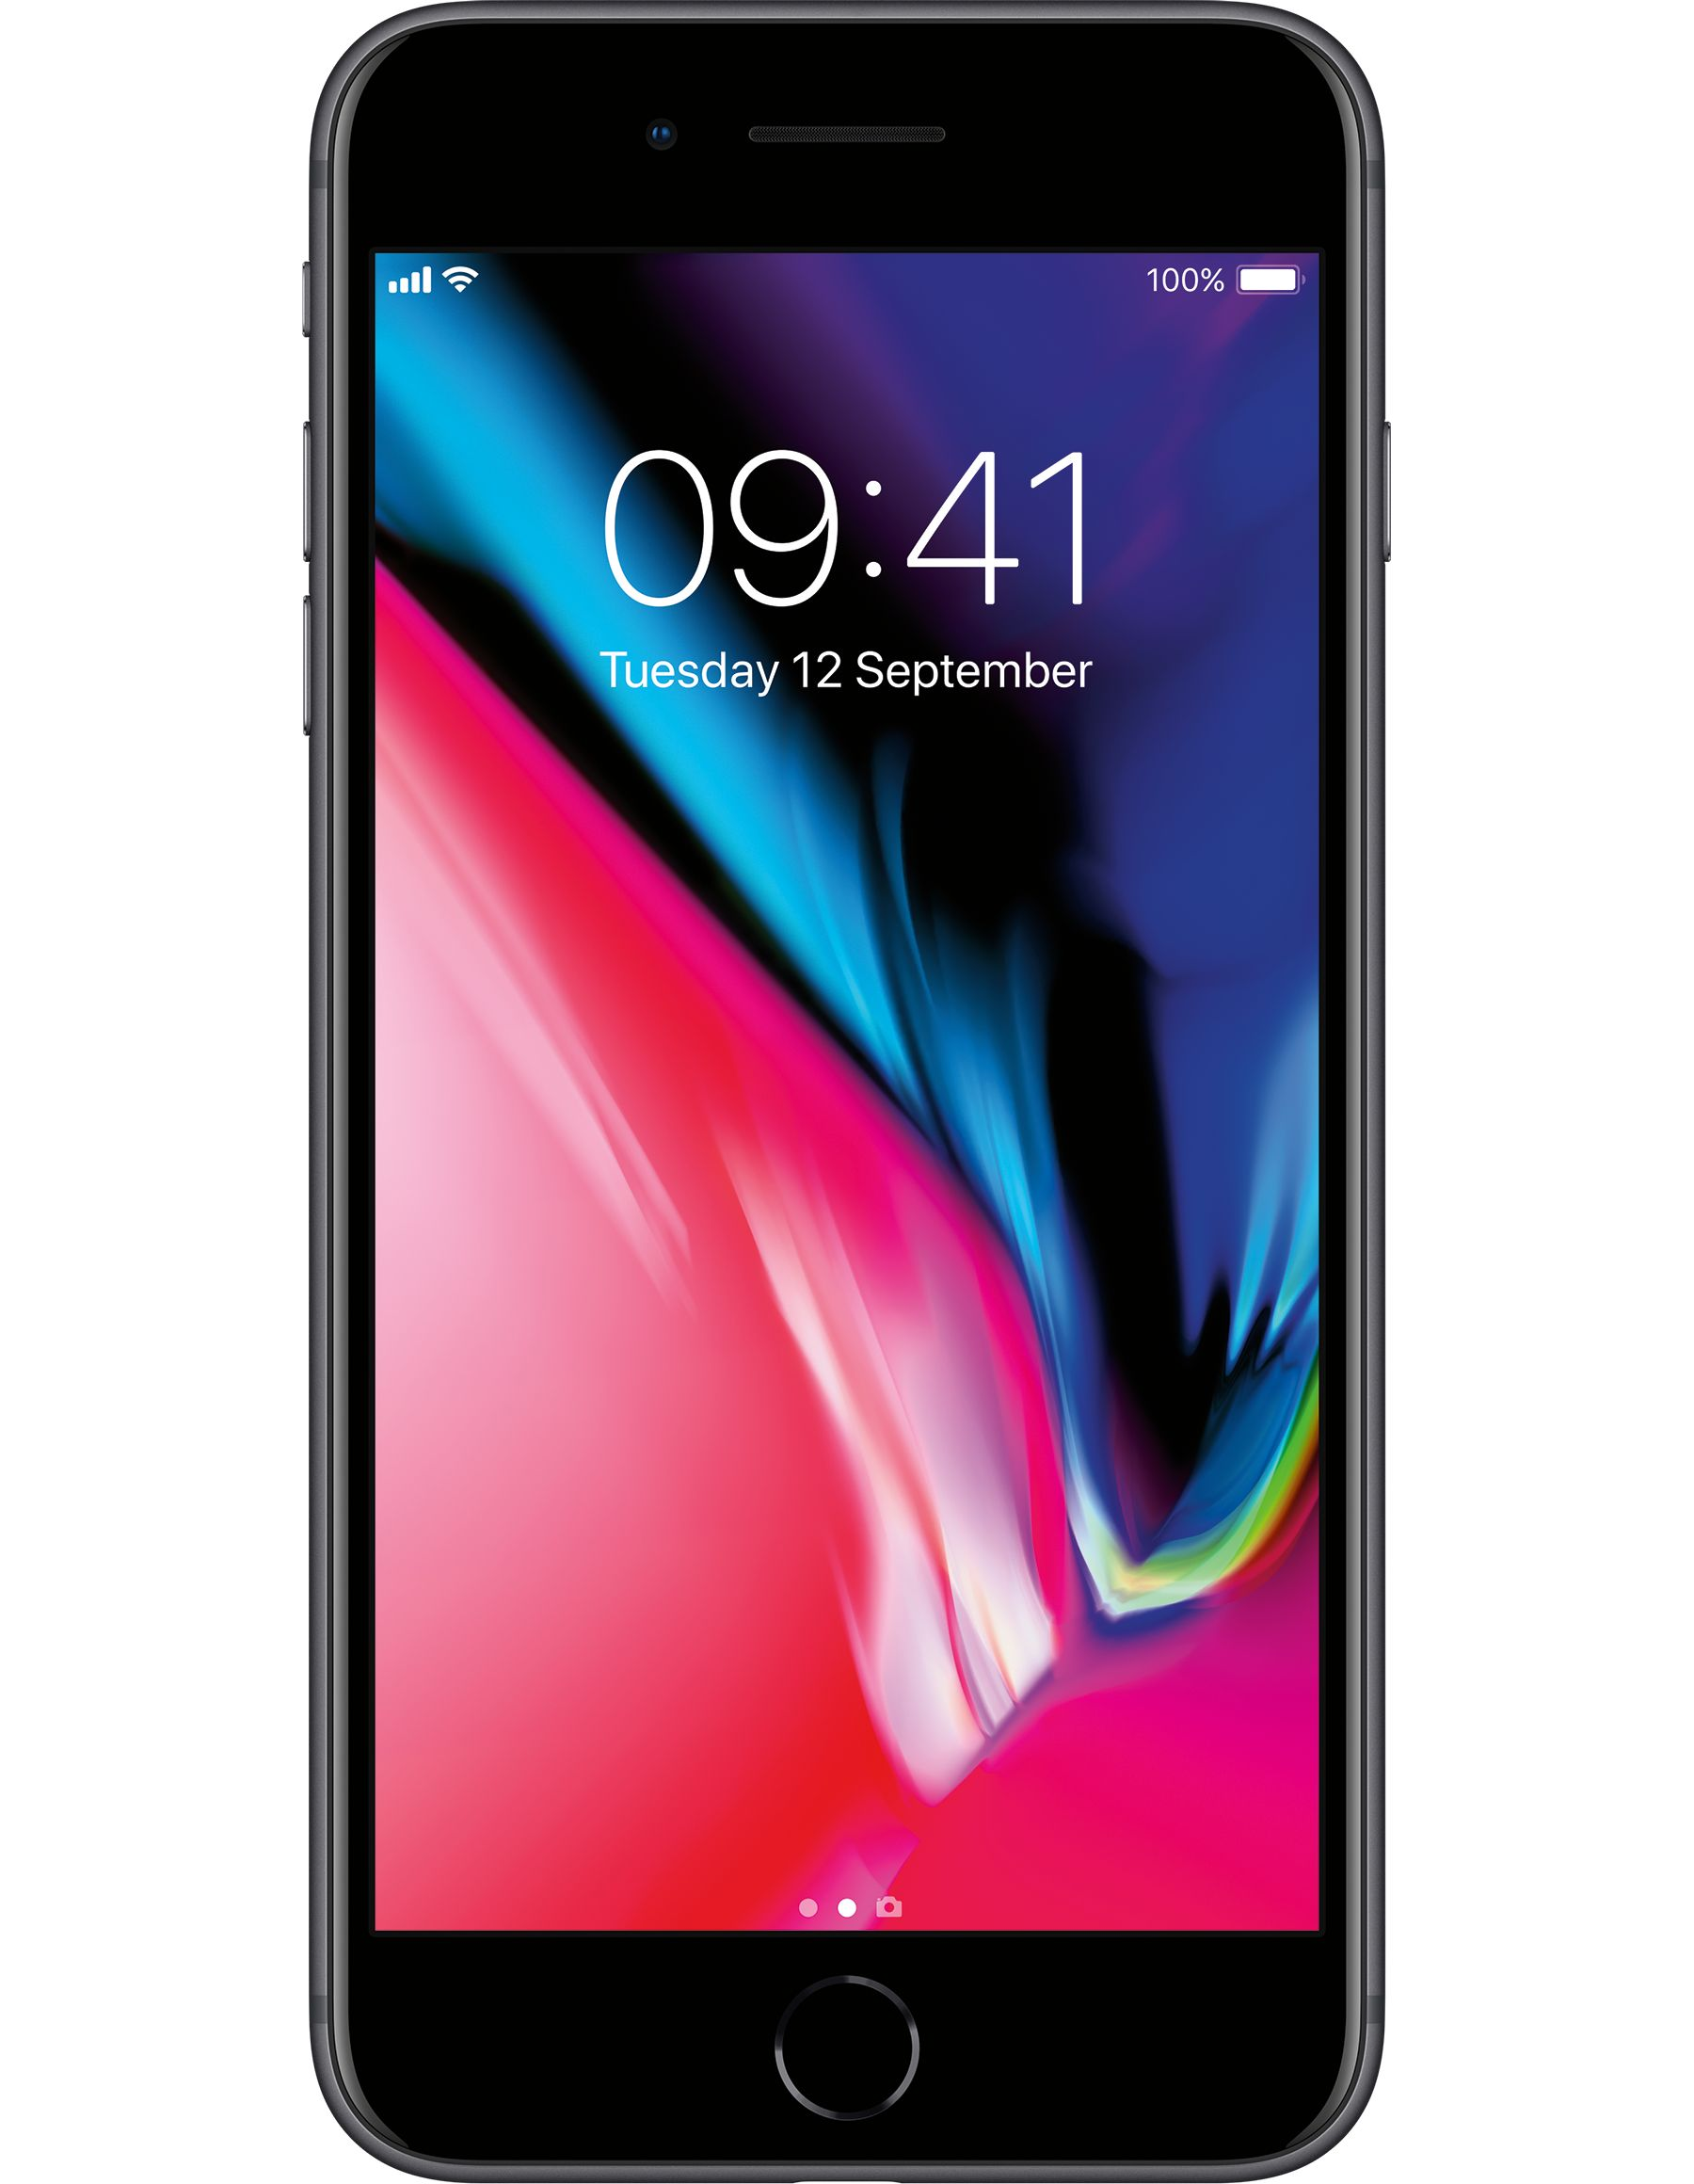 compare phones at carphone warehouse